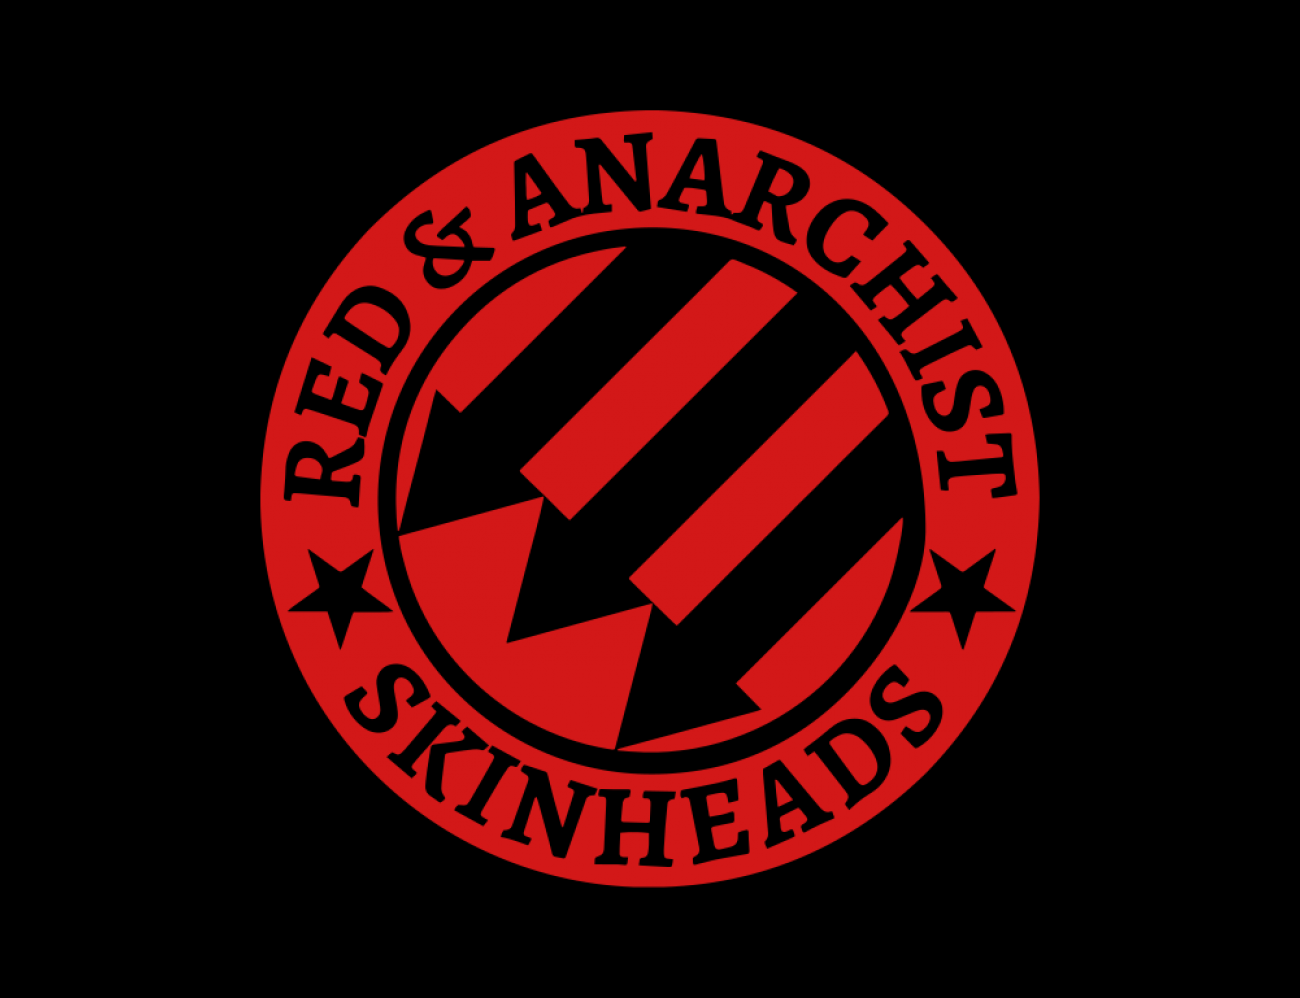 Red-and-anarchist-skinhead